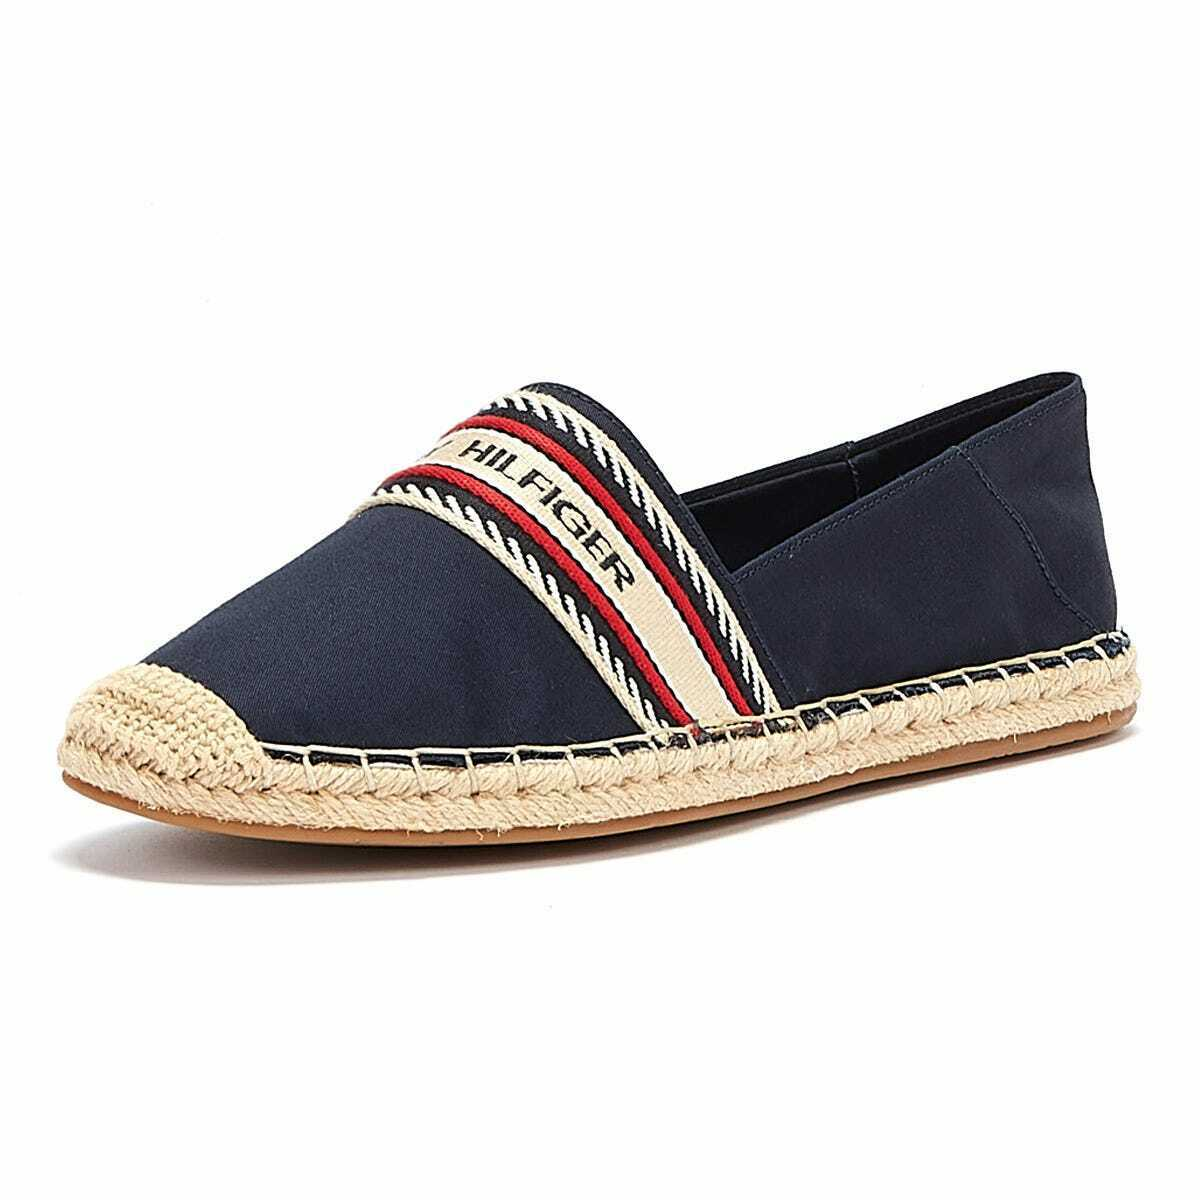 Tommy Hilfiger Artisanal Womens Navy Espadrille Casual Comfy Breathable Shoes